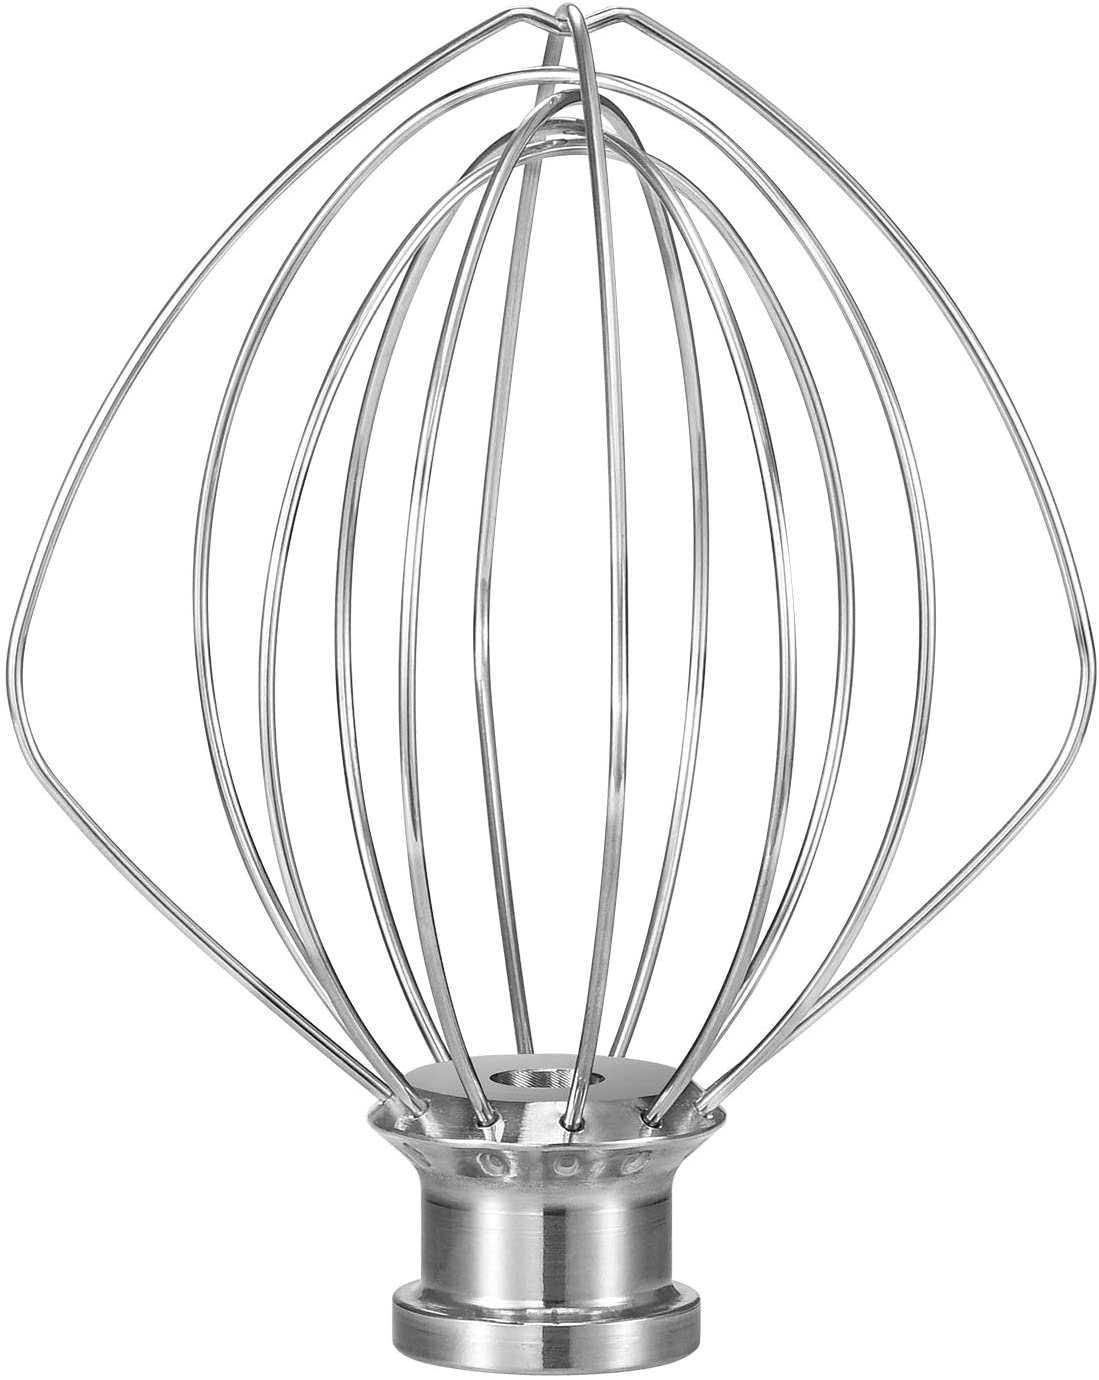 K45WW Dishwasher Safe Wire Whip Attachment 6 Wire Whisk Upgrade Real Stainless Steel Fits KitchenAid Tilt-Head Stand Mixer for Egg Heavy Cream Beater, Cakes Mayonnaise